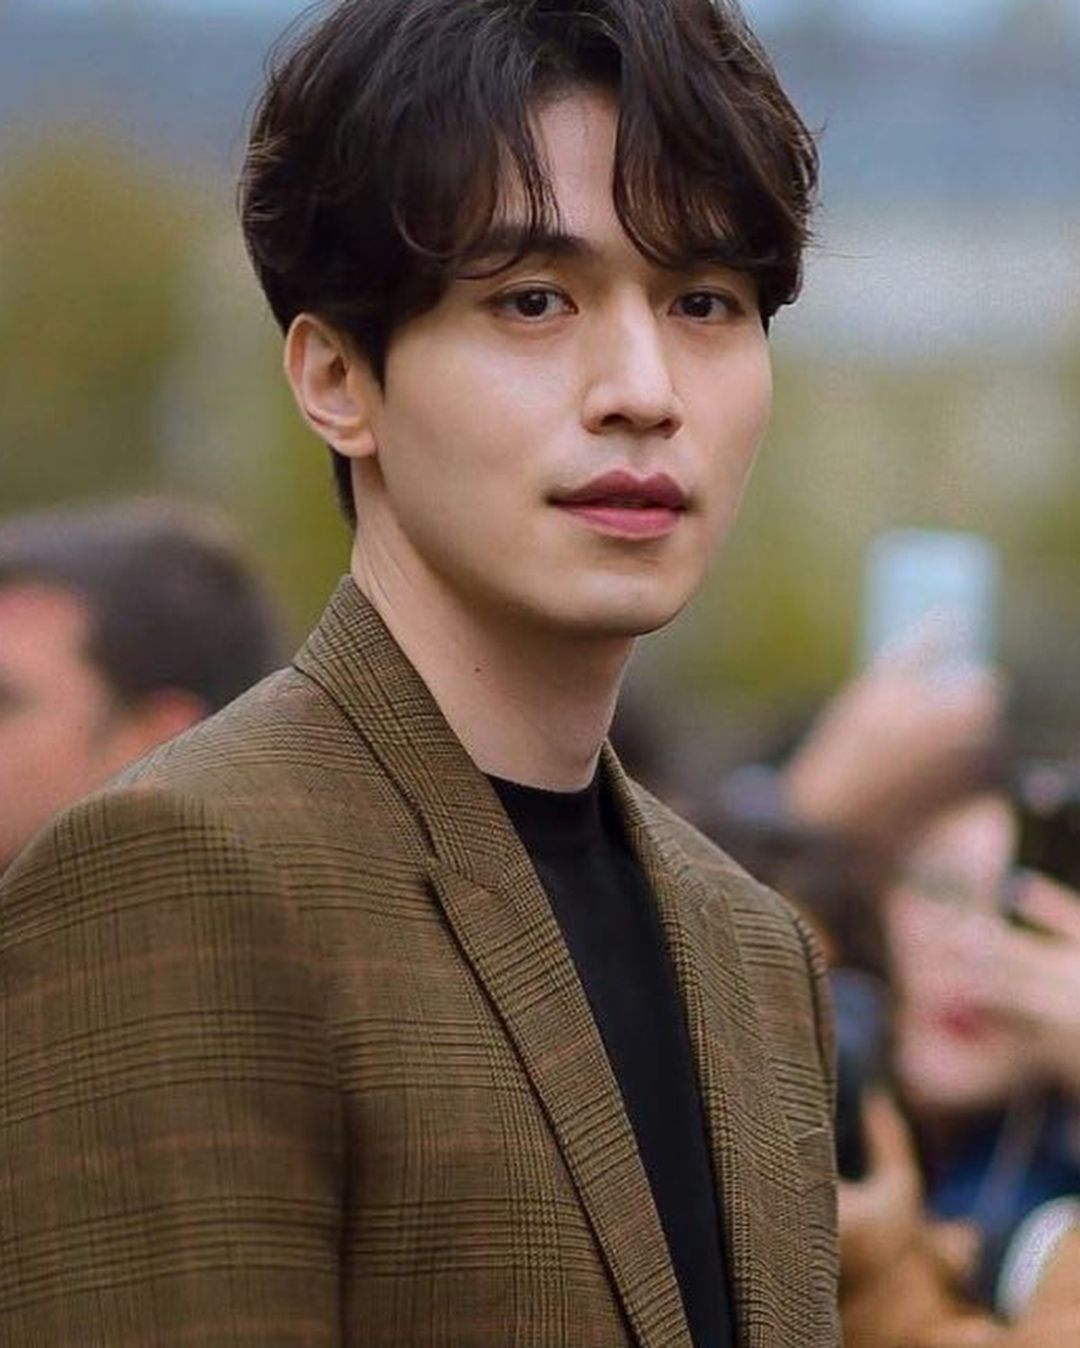 Is He Really Turning 36 Happy Birthday To Our Grim Reaper N Also Happy 18th Anniversary Since Debut Patiently Waiting For A New Drama Happyleedo Toc Nam Toc